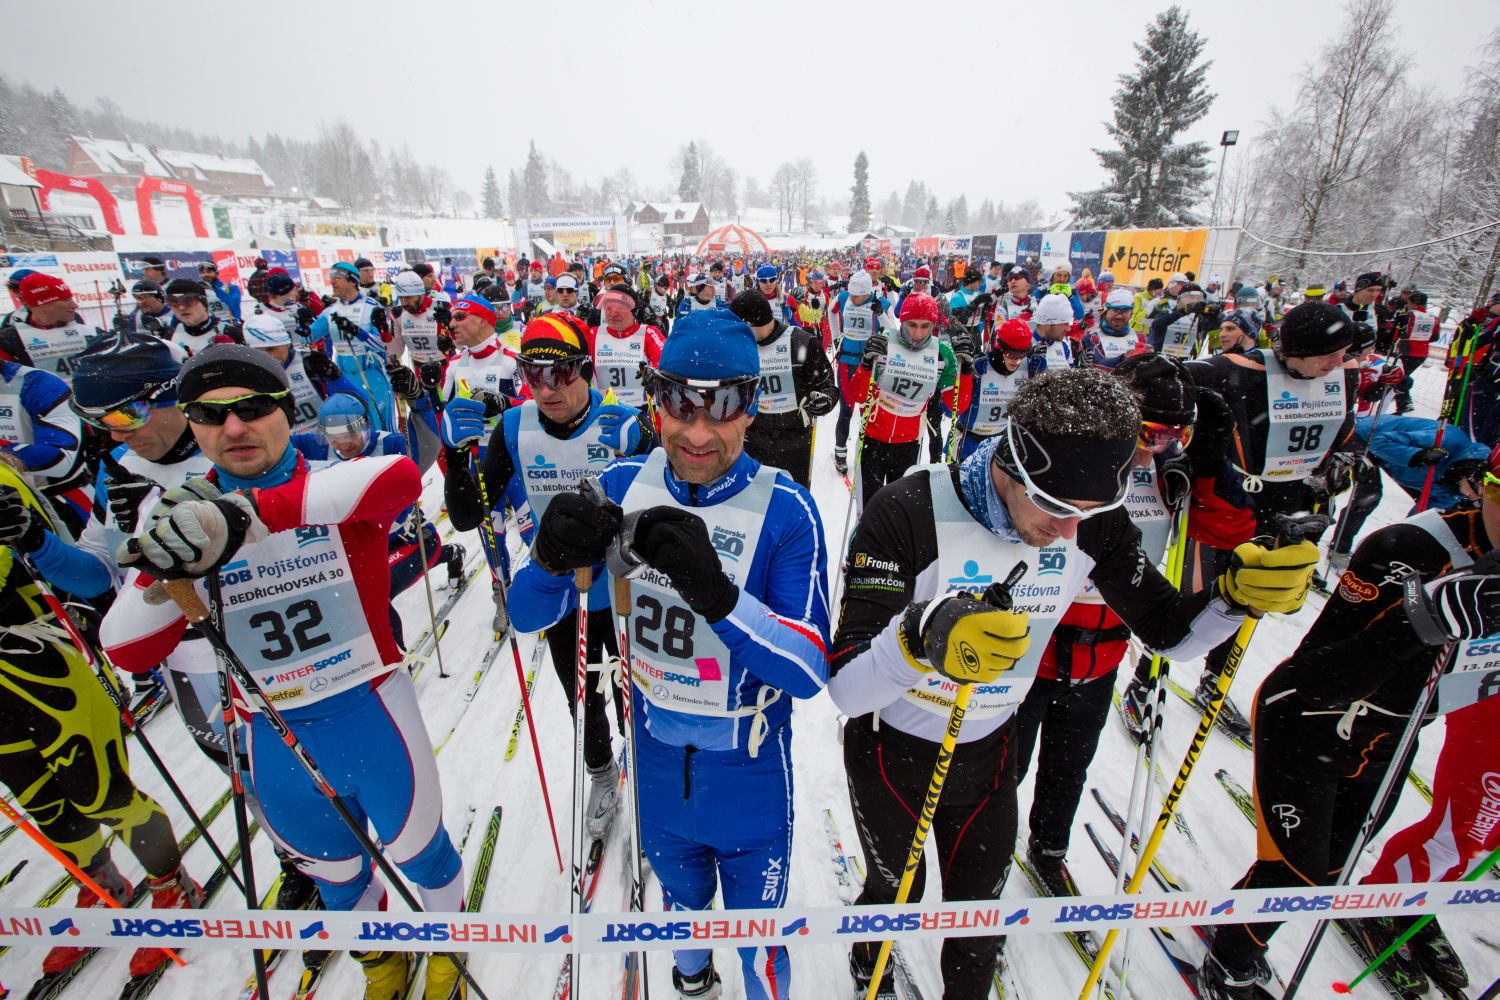 Come and enjoy the unique atmosphere of a prestigious ski race!